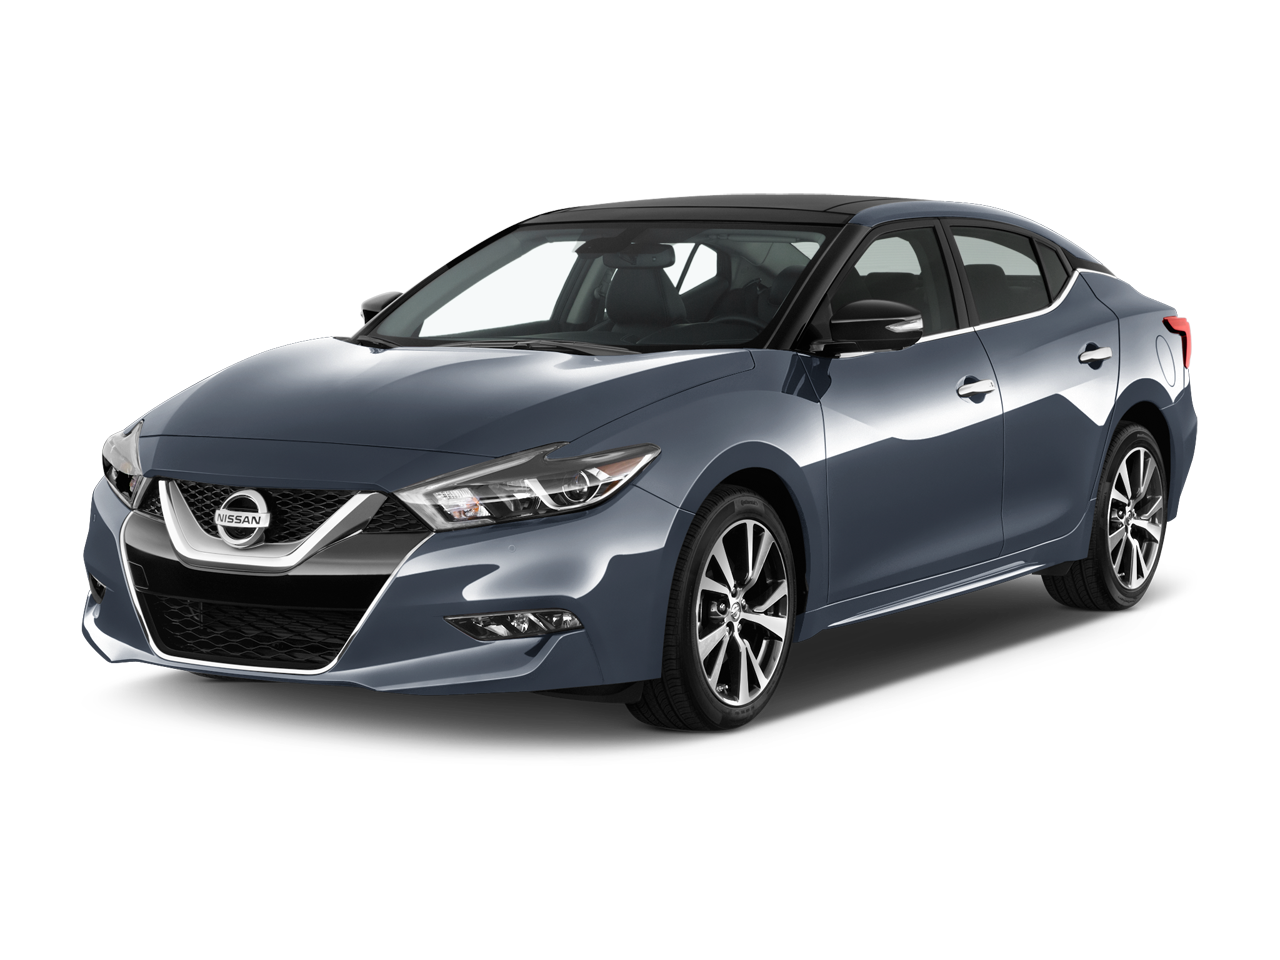 new 2017 nissan maxima platinum near laurel ms kims no. Black Bedroom Furniture Sets. Home Design Ideas